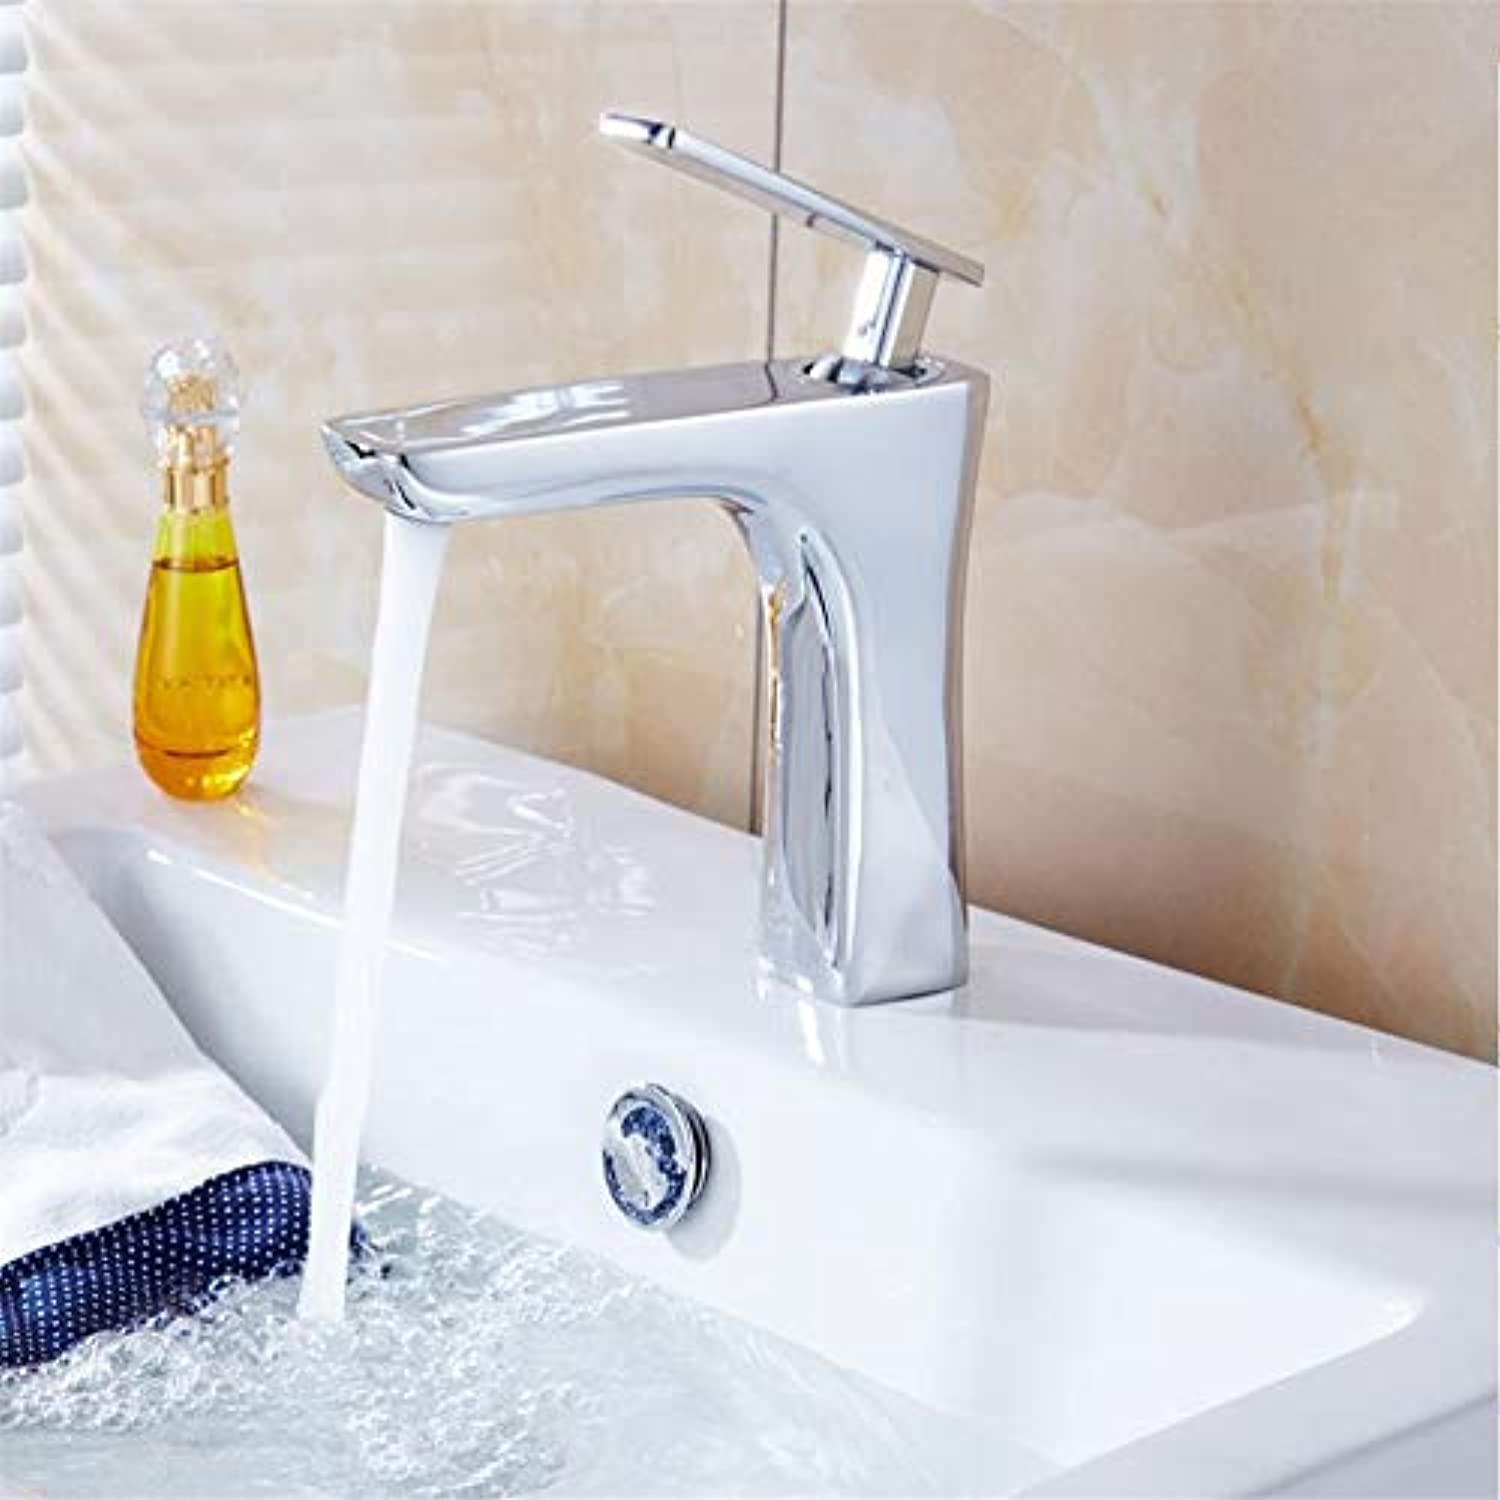 Faucet Basin Faucetchrome Brass Bathroom Sink Faucet Basin Mixer Tap Deck Mount One Hole